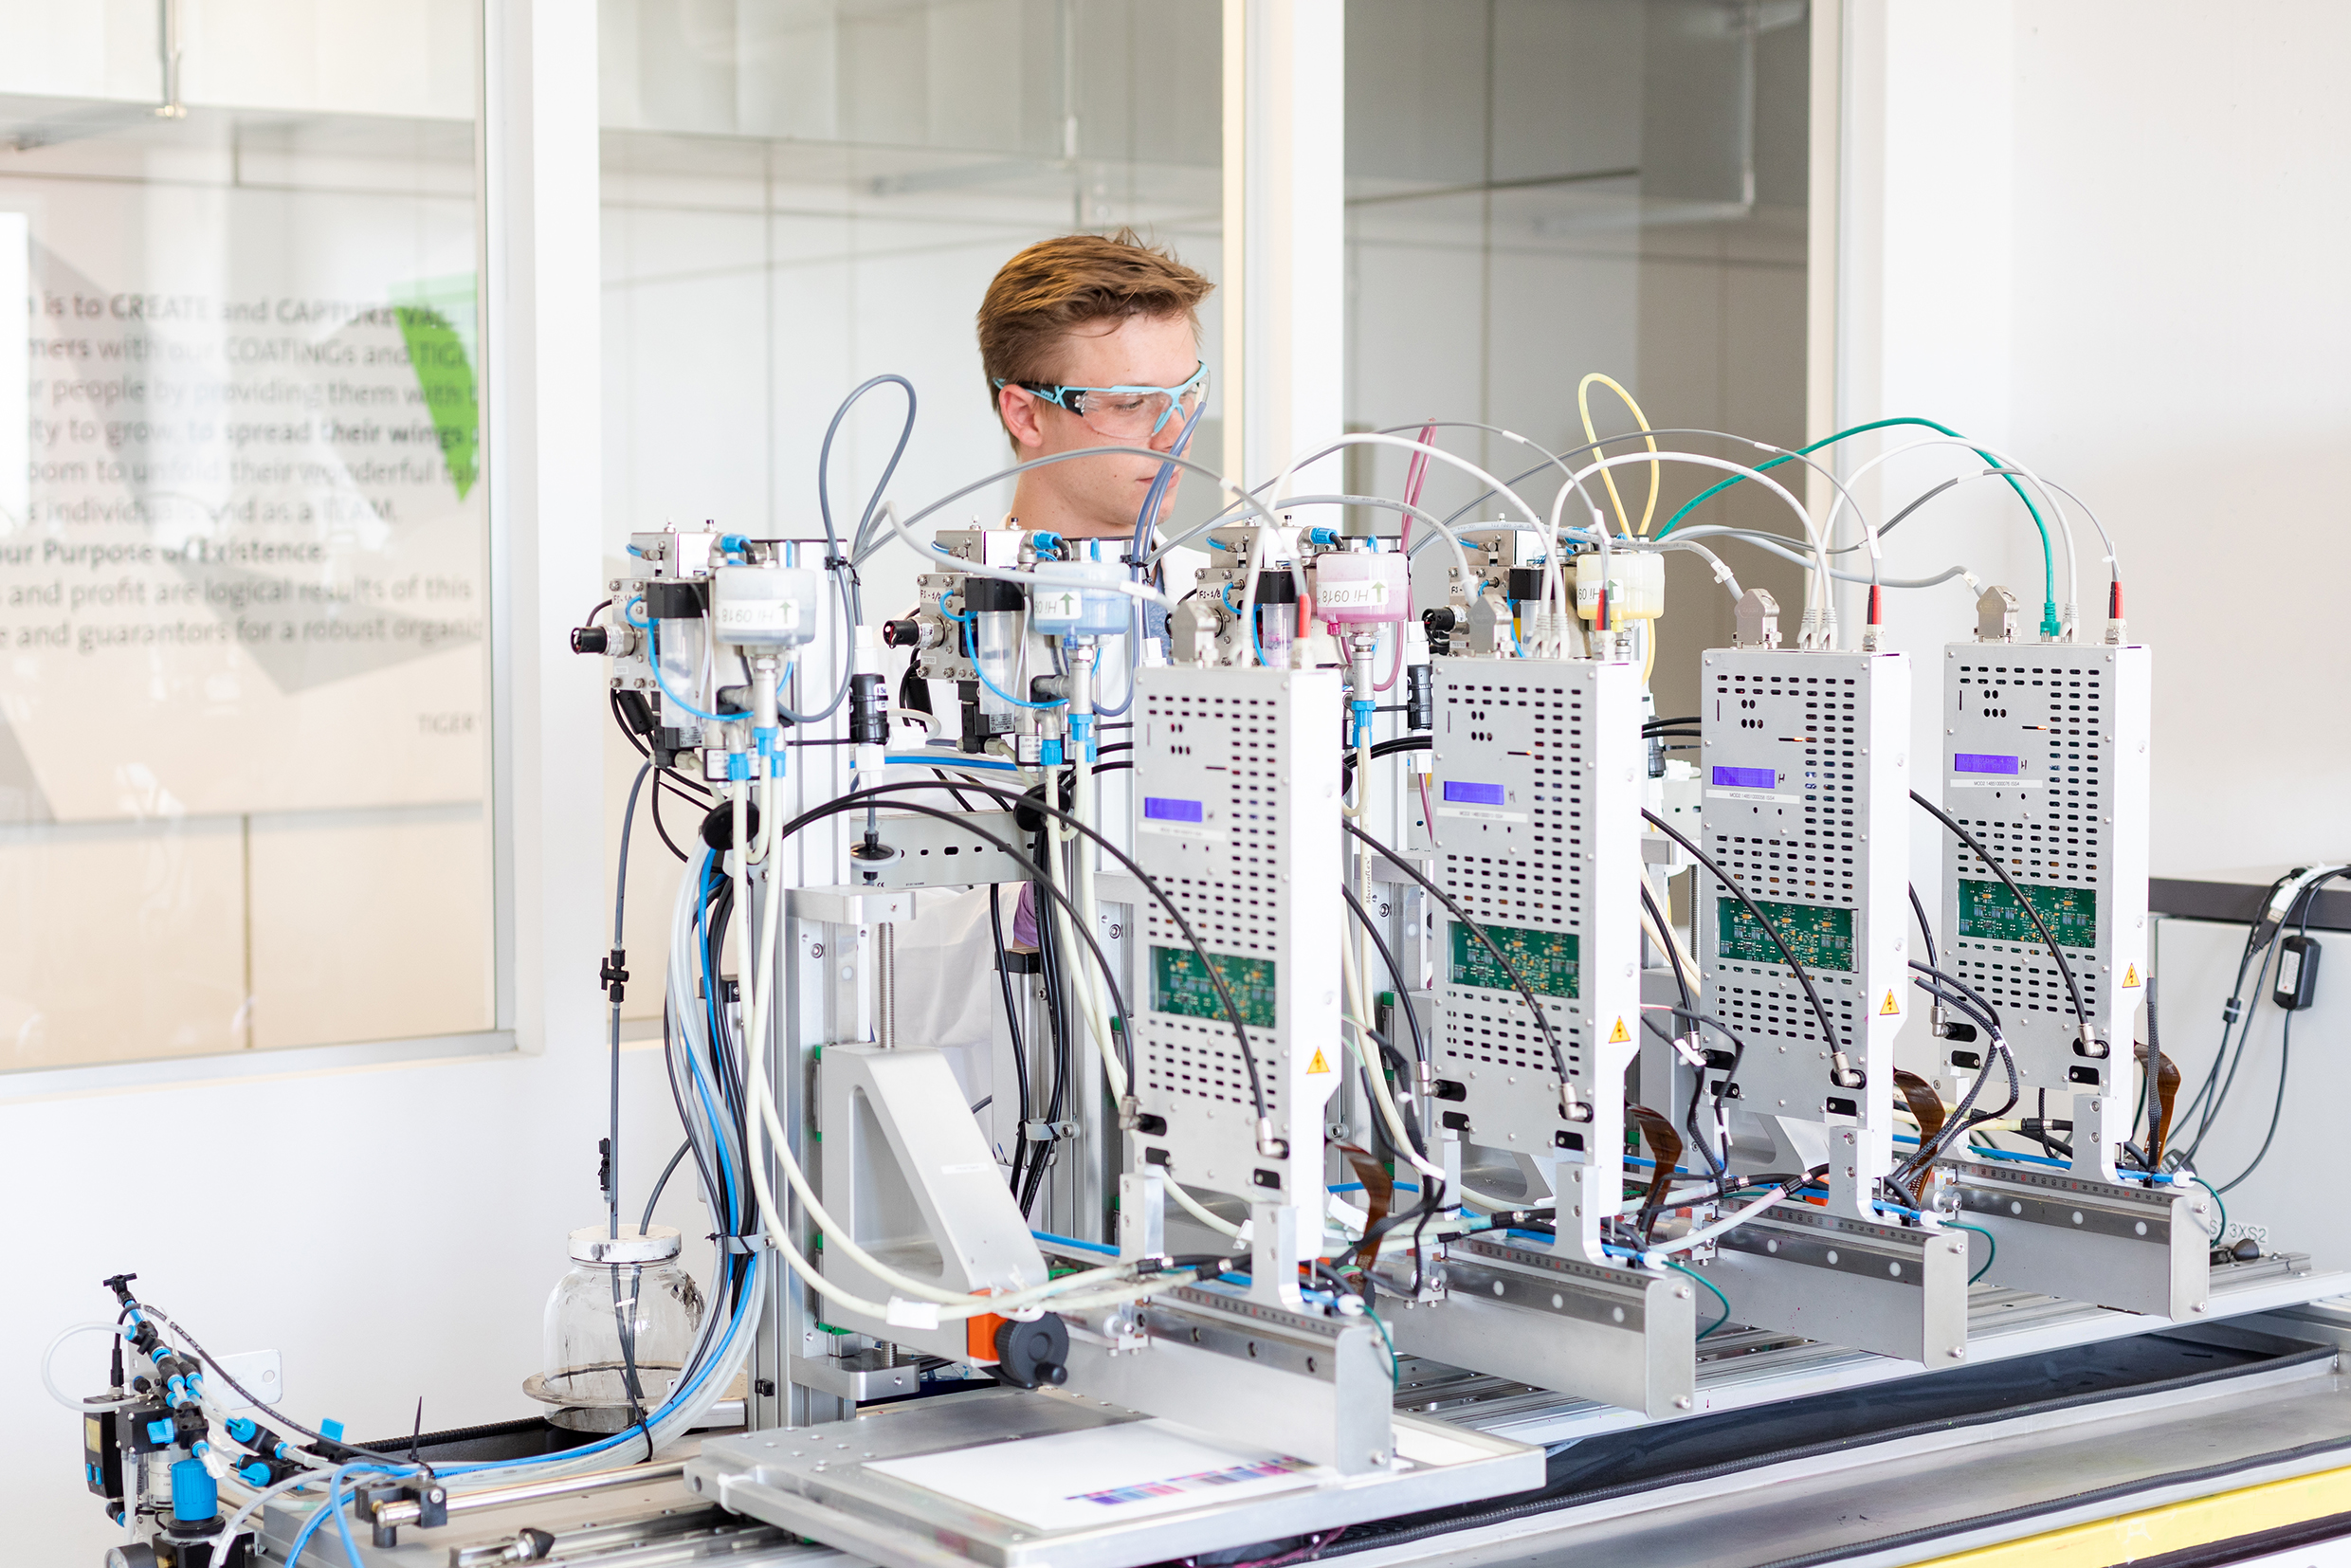 INKplant targets use of AM in regenerative medicine to address aging of European population